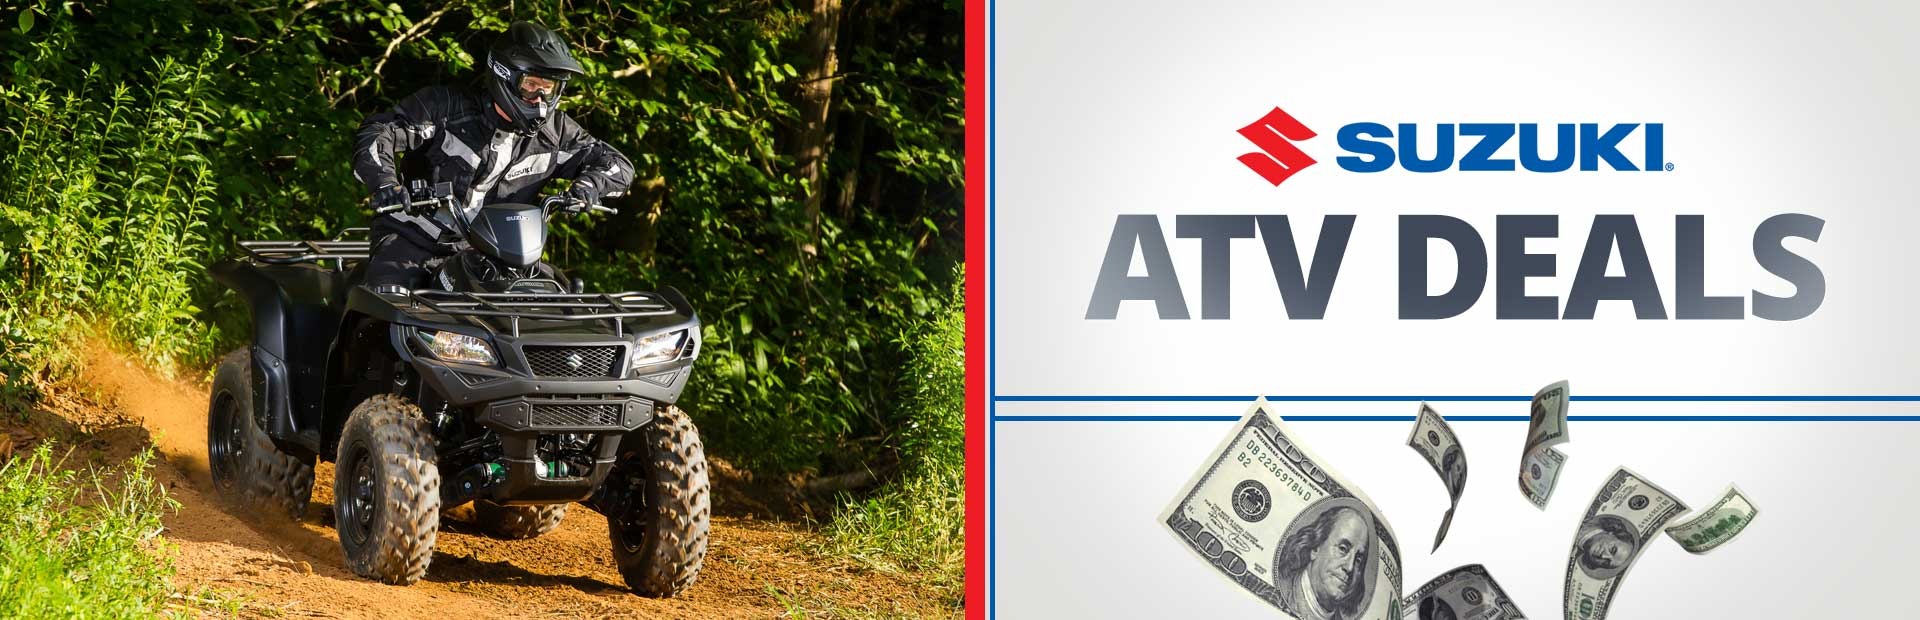 Suzuki: ATV Deals